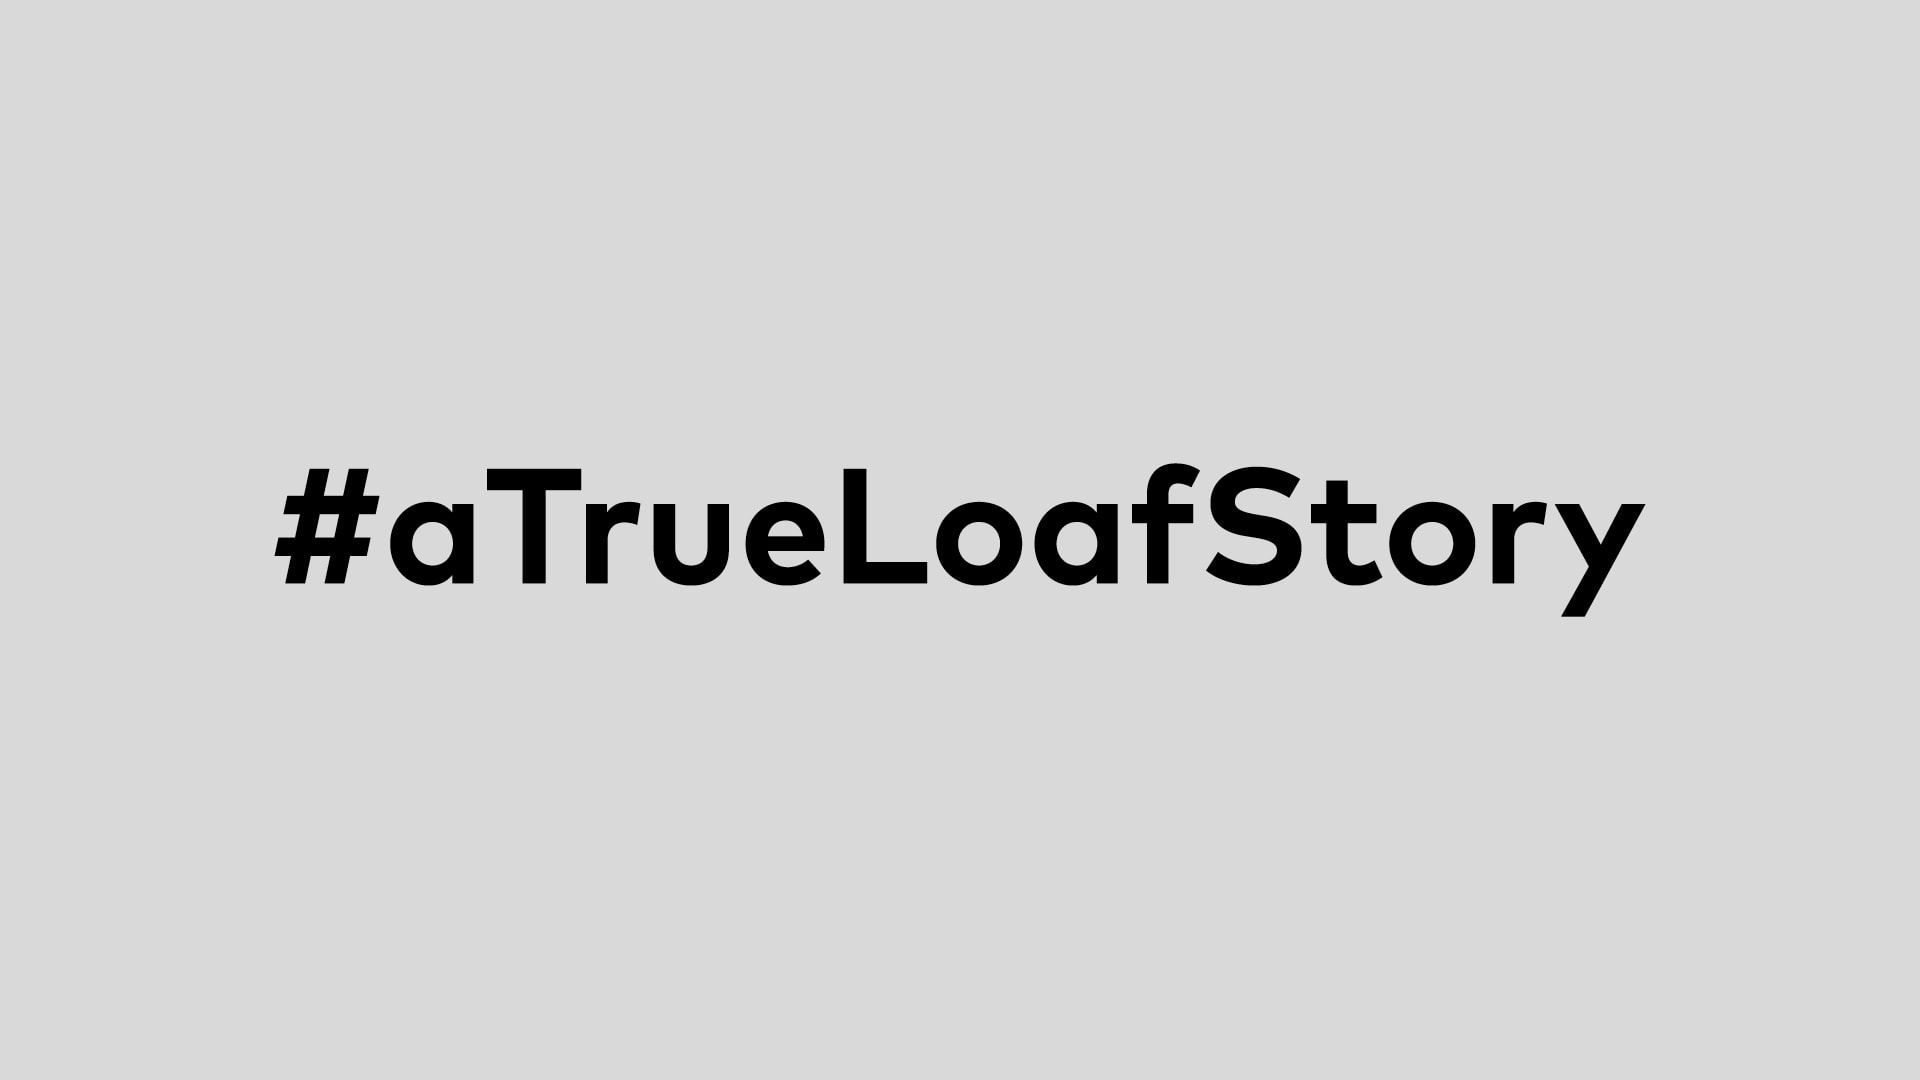 BS a true loaf story